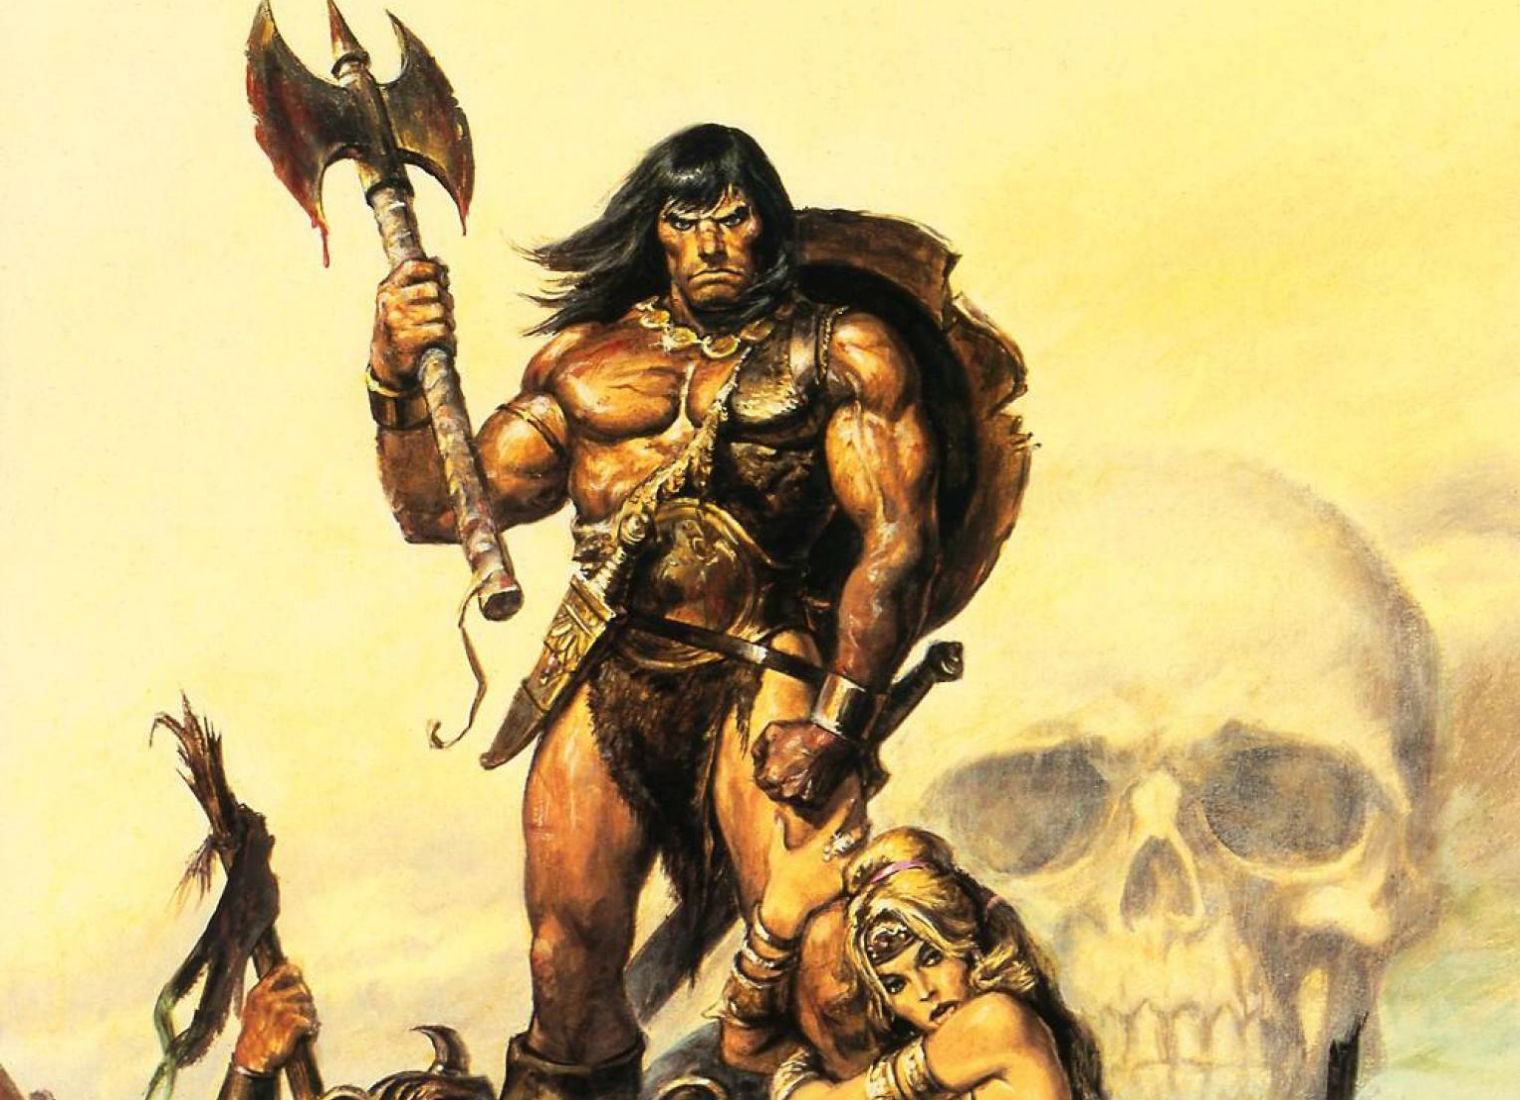 CONAN THE BARBARIAN gw wallpaper background 1520x1100